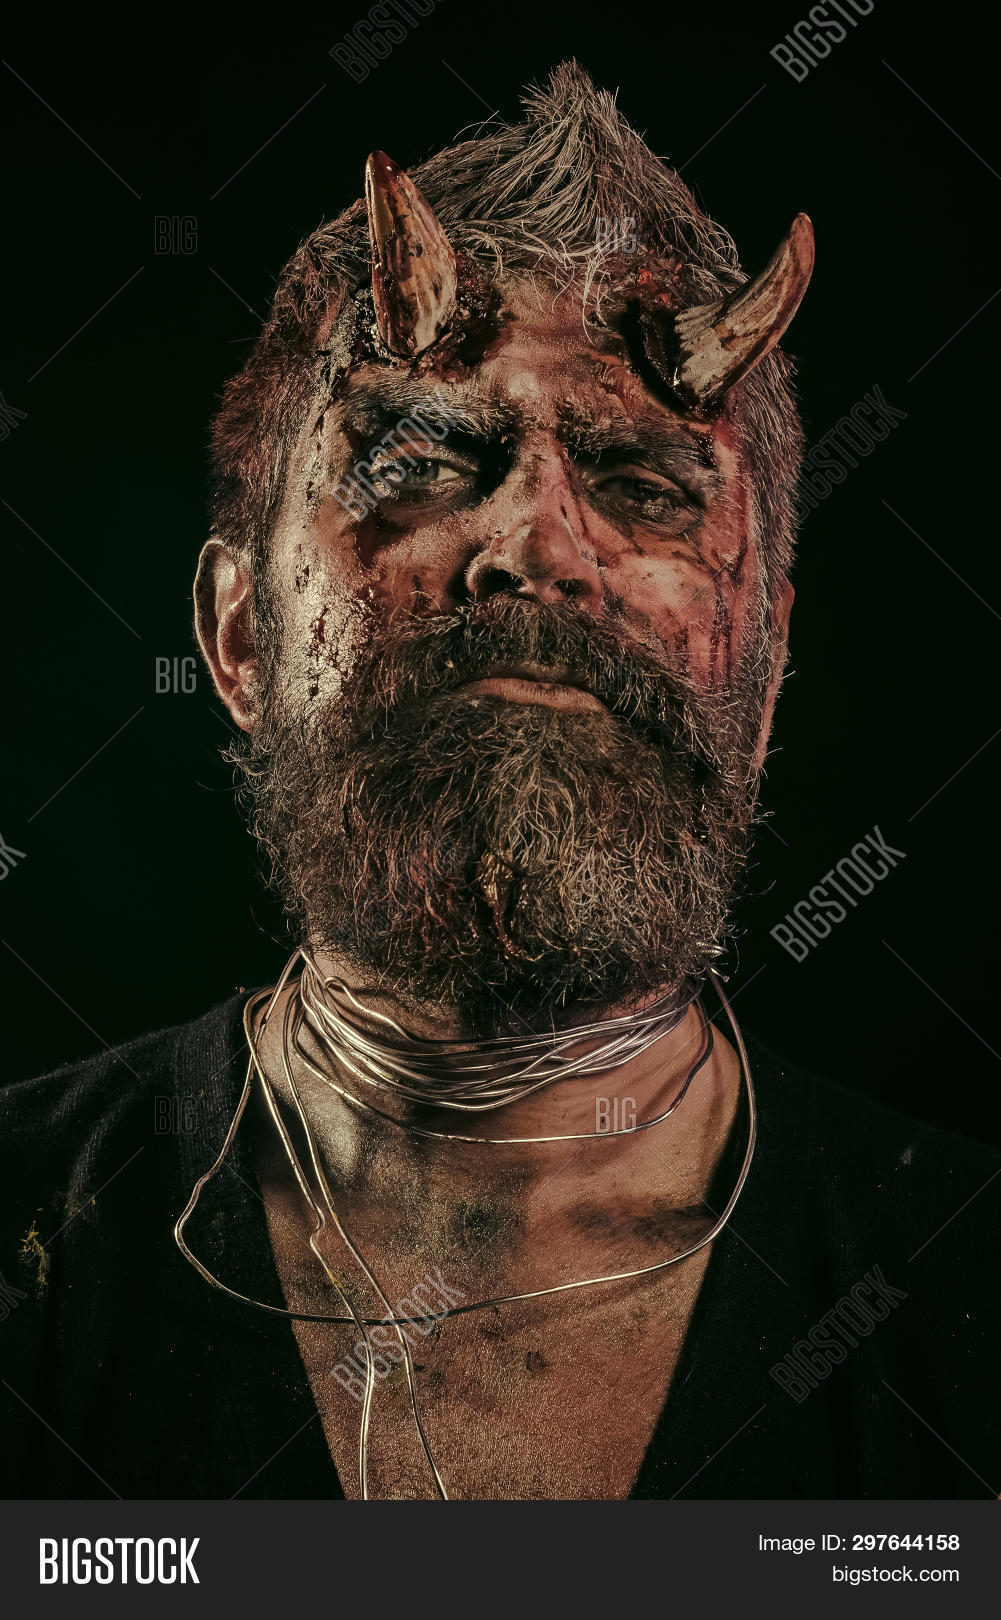 Halloween Maan.Halloween Man Devil On Image Photo Free Trial Bigstock